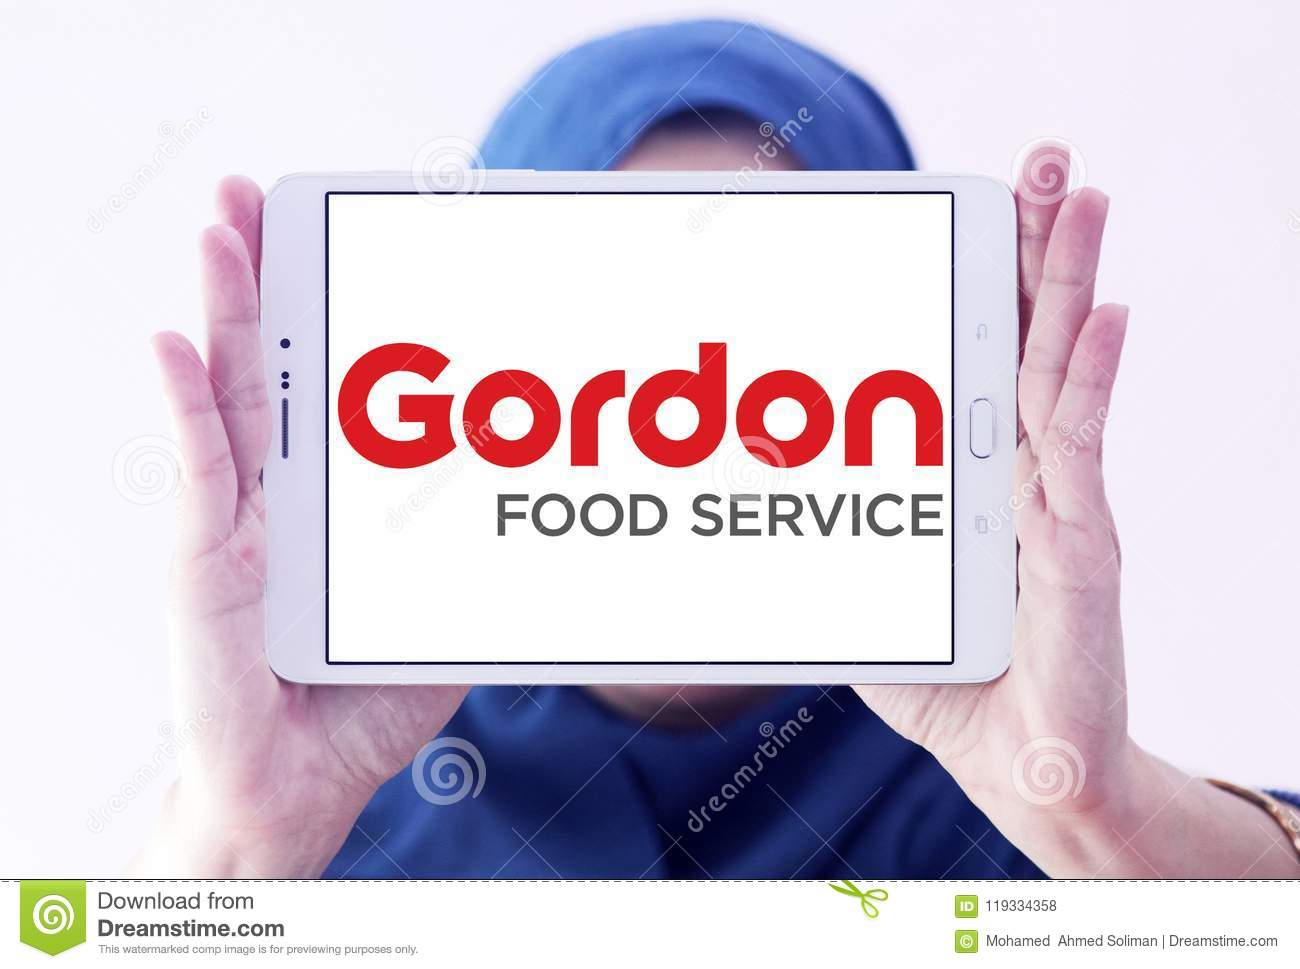 Gordon Food Service logo editorial stock photo  Image of editorial